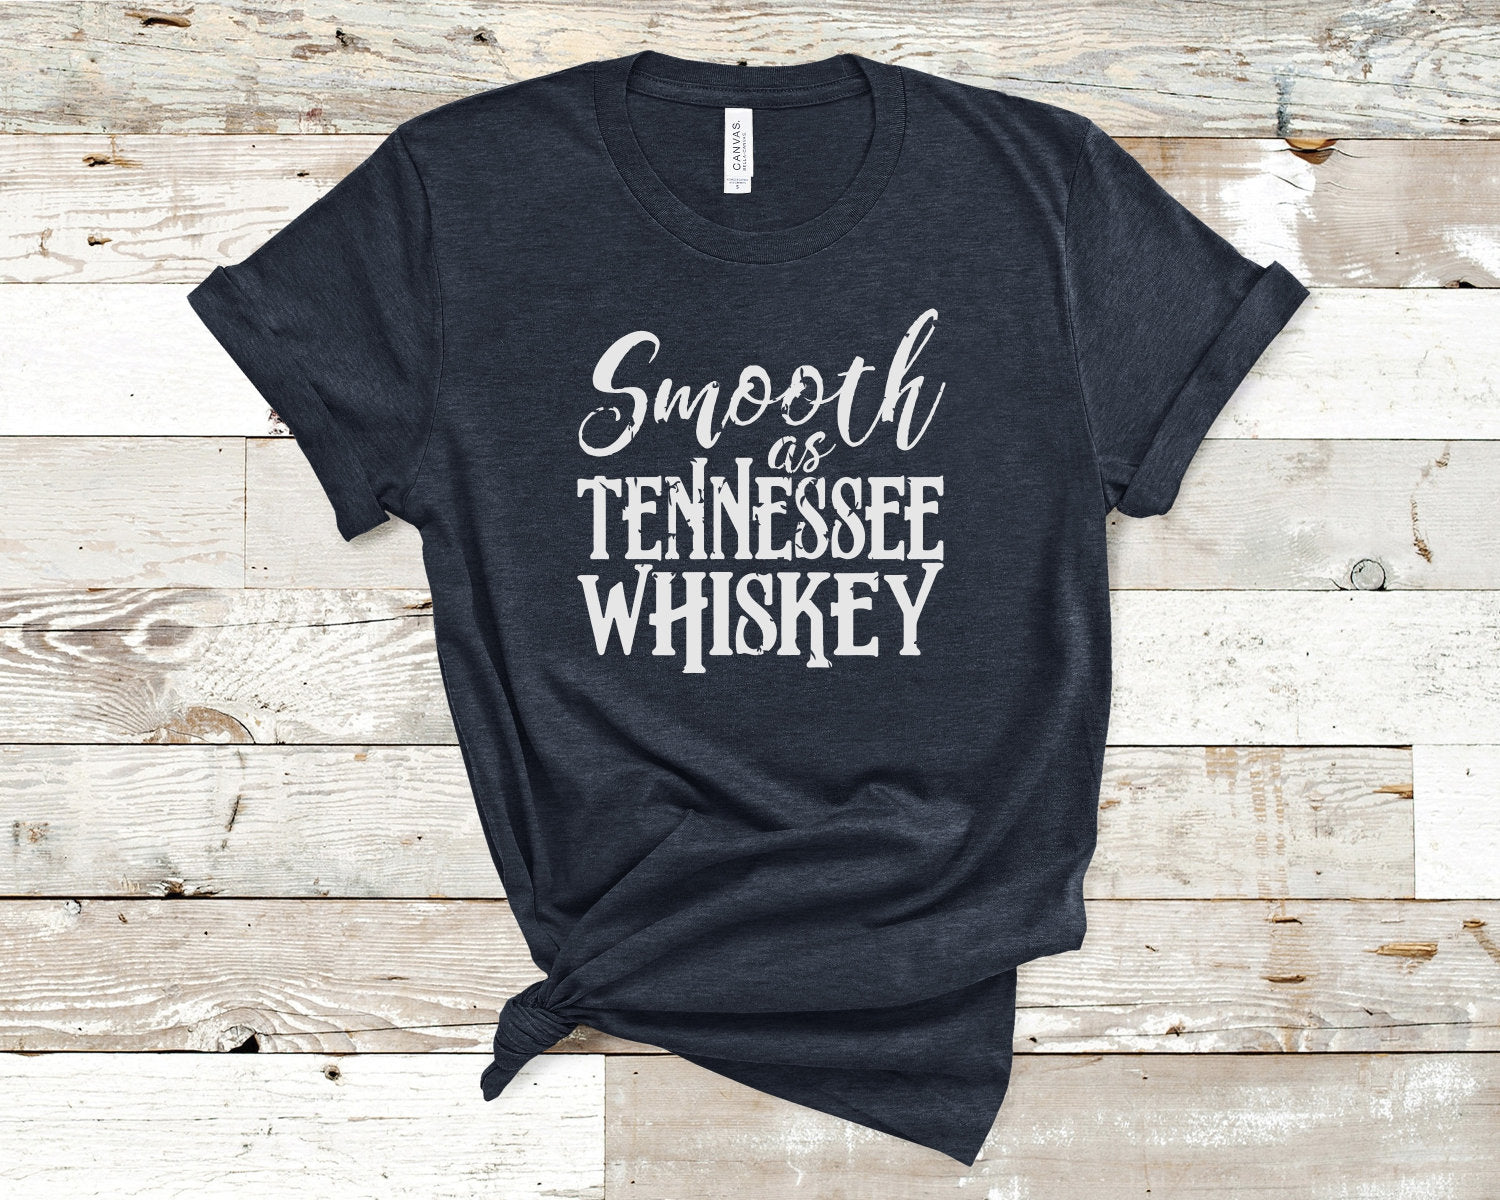 TENNESSEE WHISKEY SHIRT- Smooth as Tennessee whiskey shirt- Chris Stapleton shirt- Texas Country Shirt